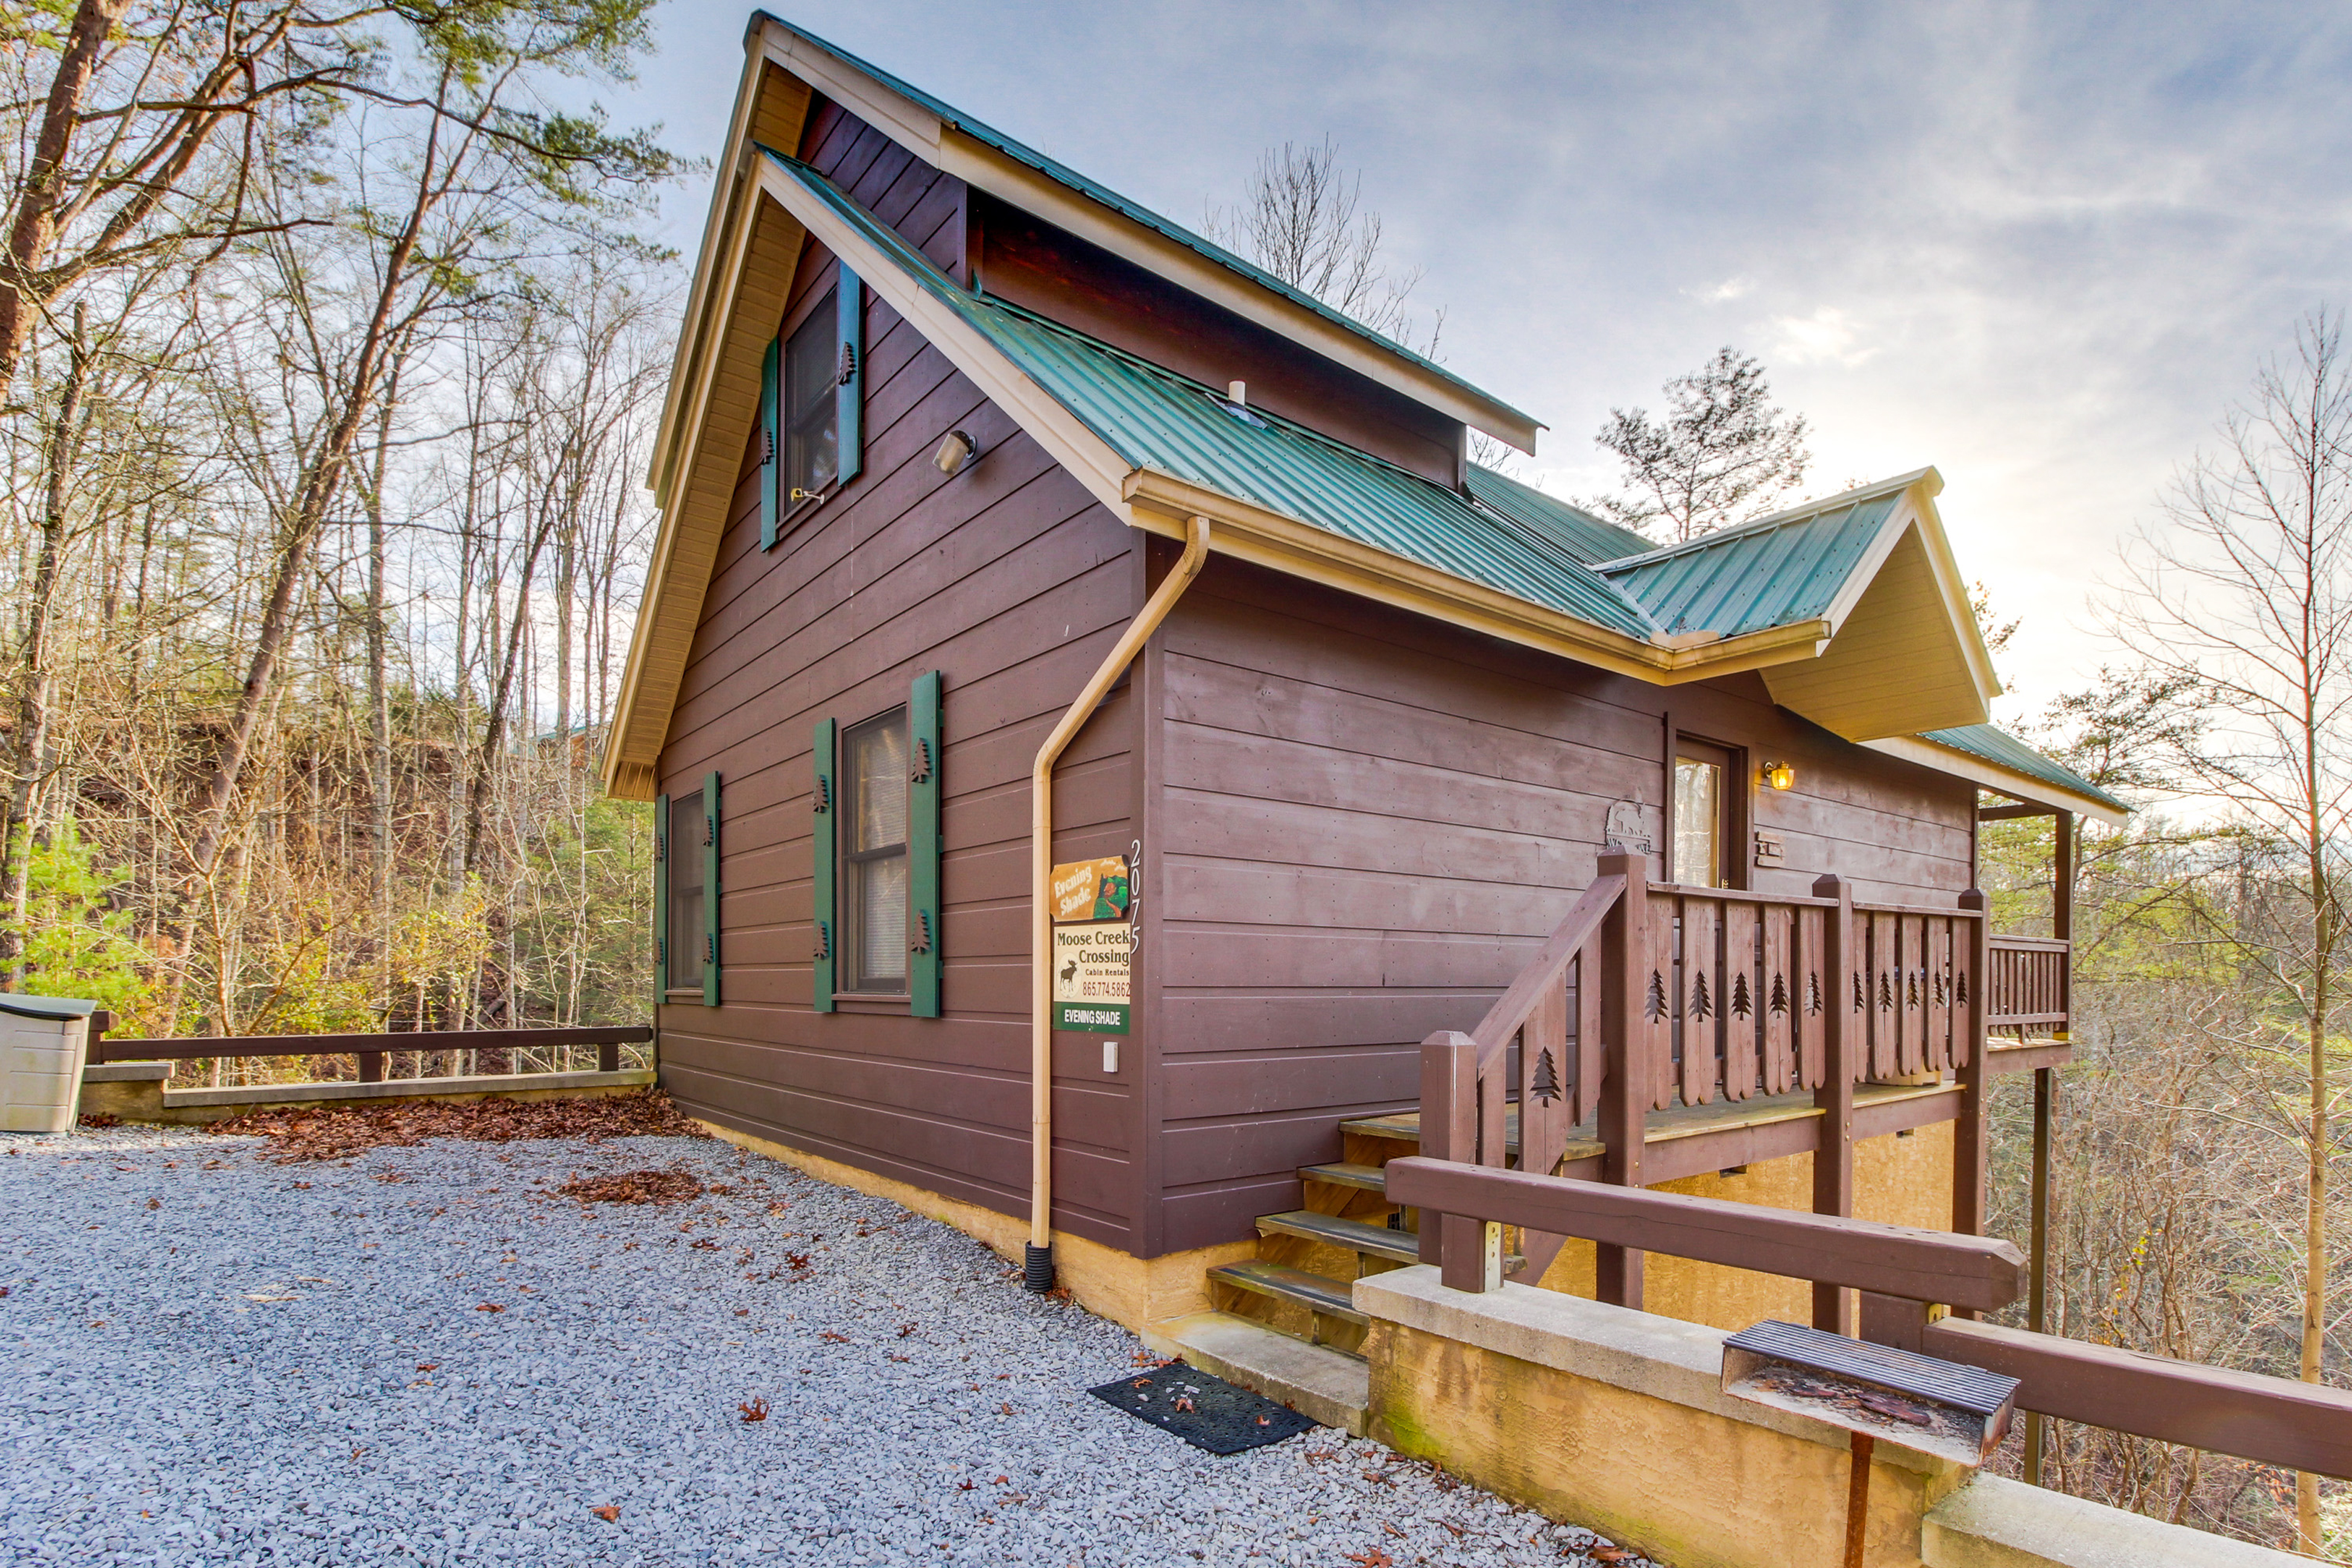 pigeon for pool friendly cabin indoor in under rent forge tn night cabins a rentals pet rental